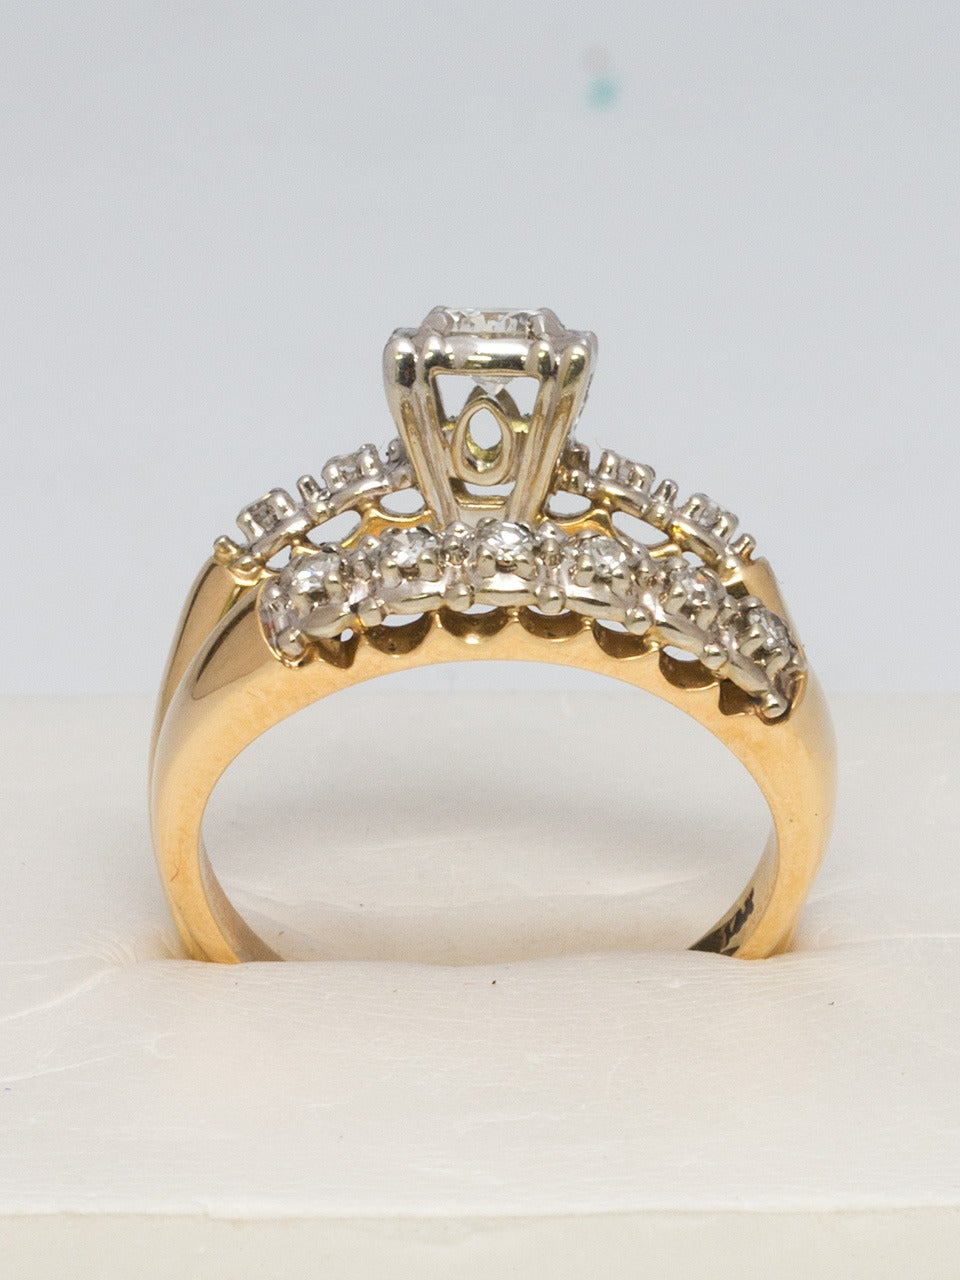 1950s Yellow Gold And Diamond Wedding Ring Set For Sale At